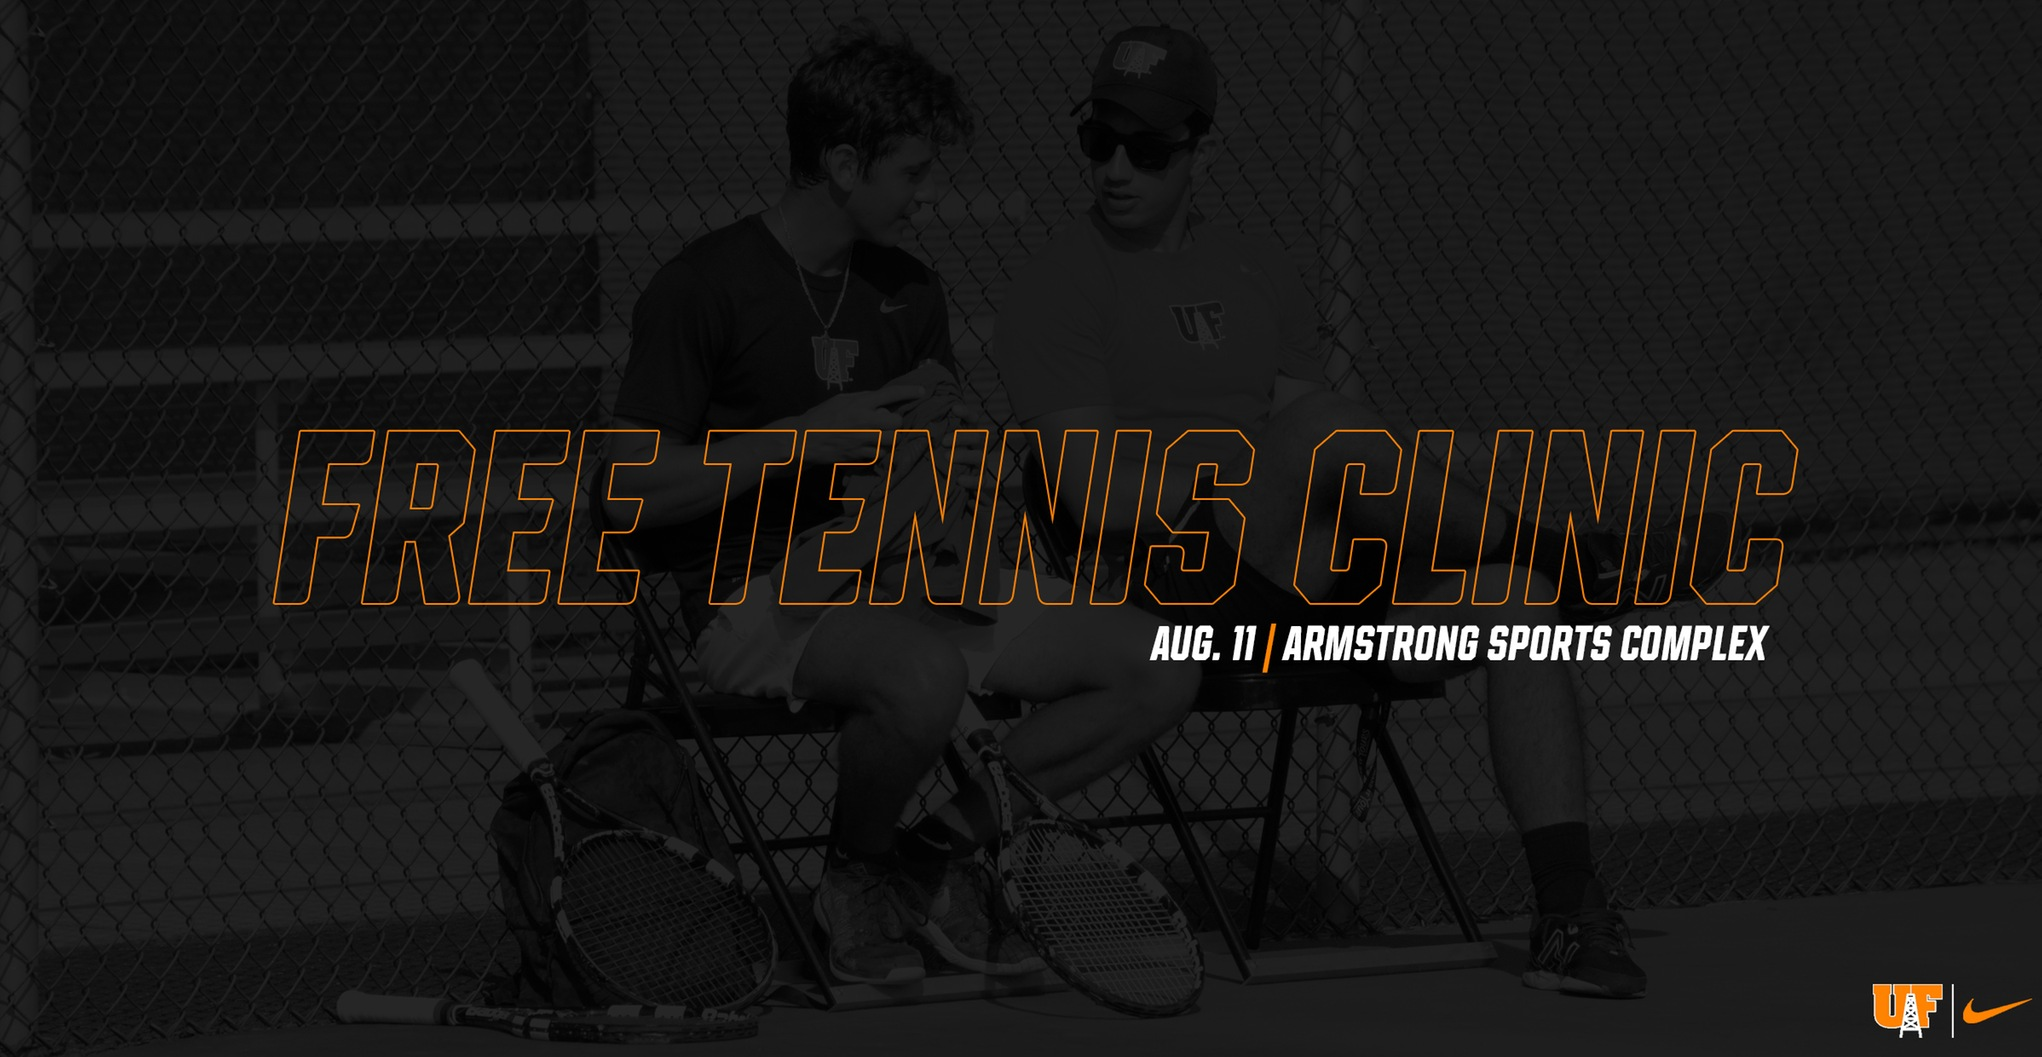 Oilers to Host FREE Tennis Clinic